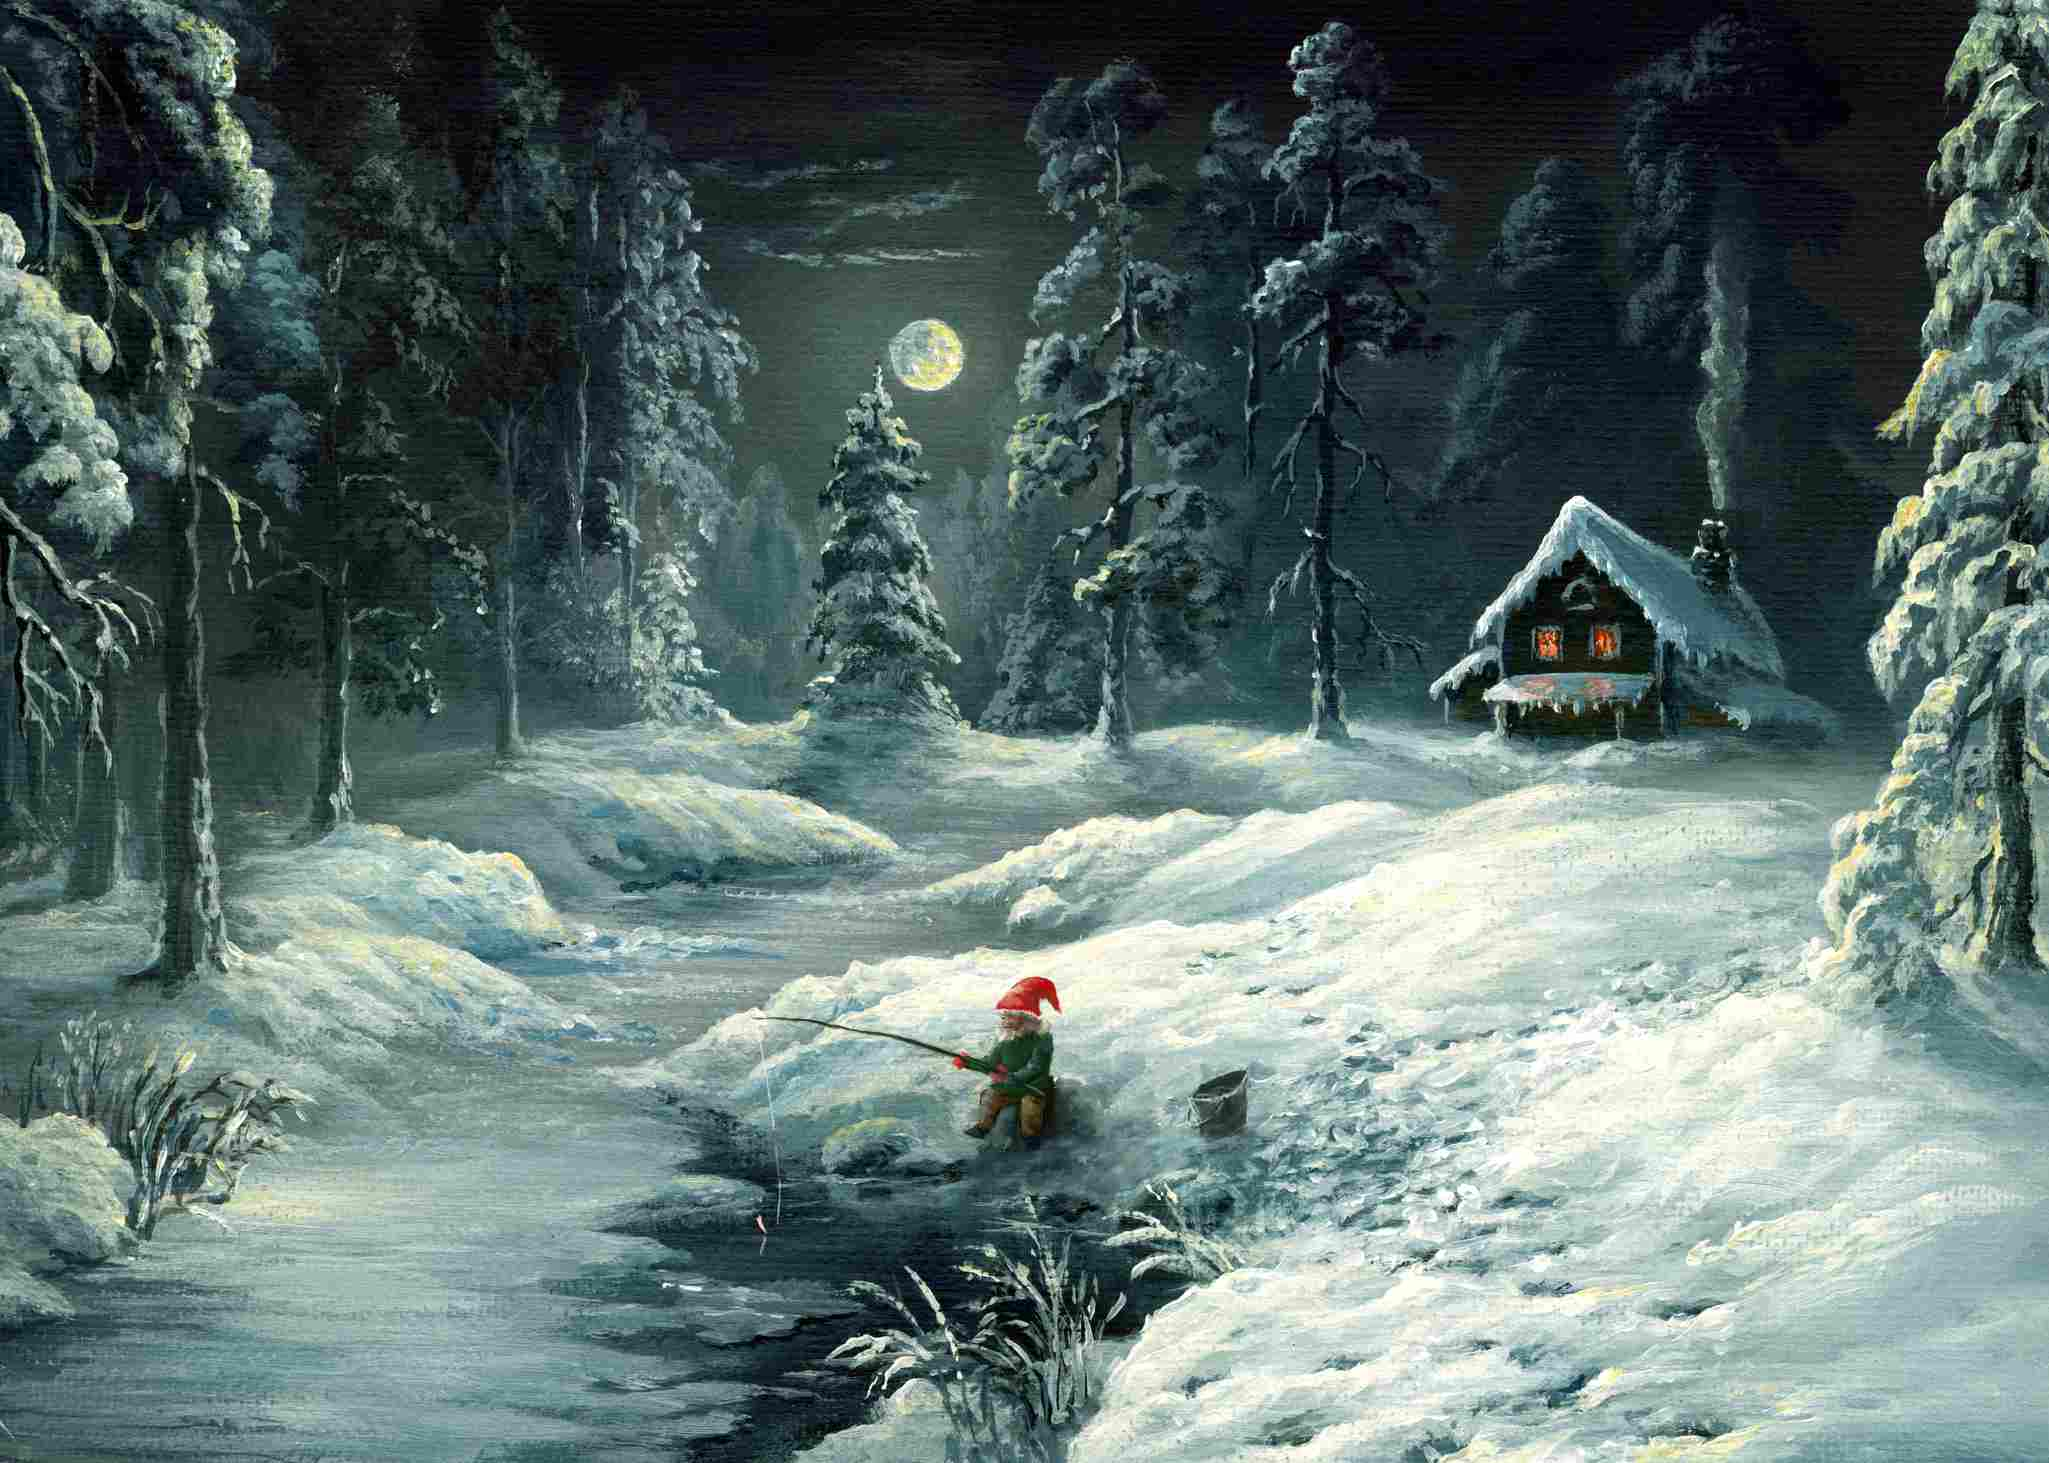 painting of an elf fishing in a river in winter